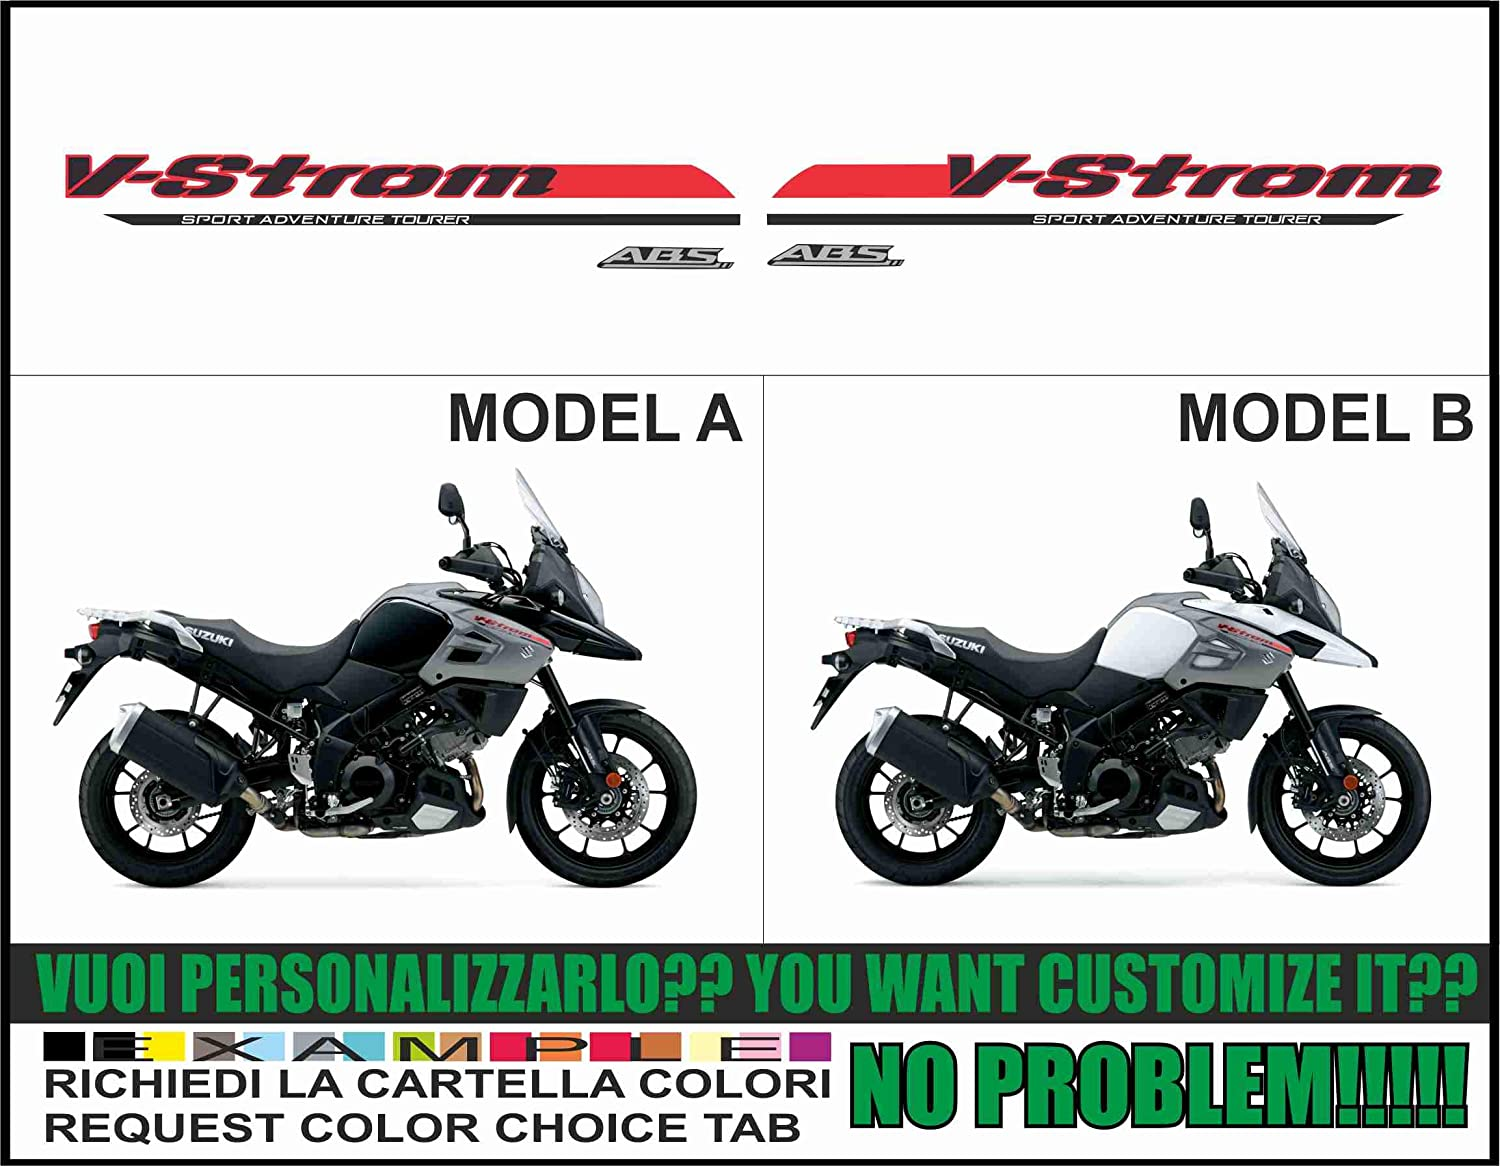 Kit adesivi Decal Stikers Suzuki V-Strom DL 1000 2017 2018: Amazon.es: Coche y moto